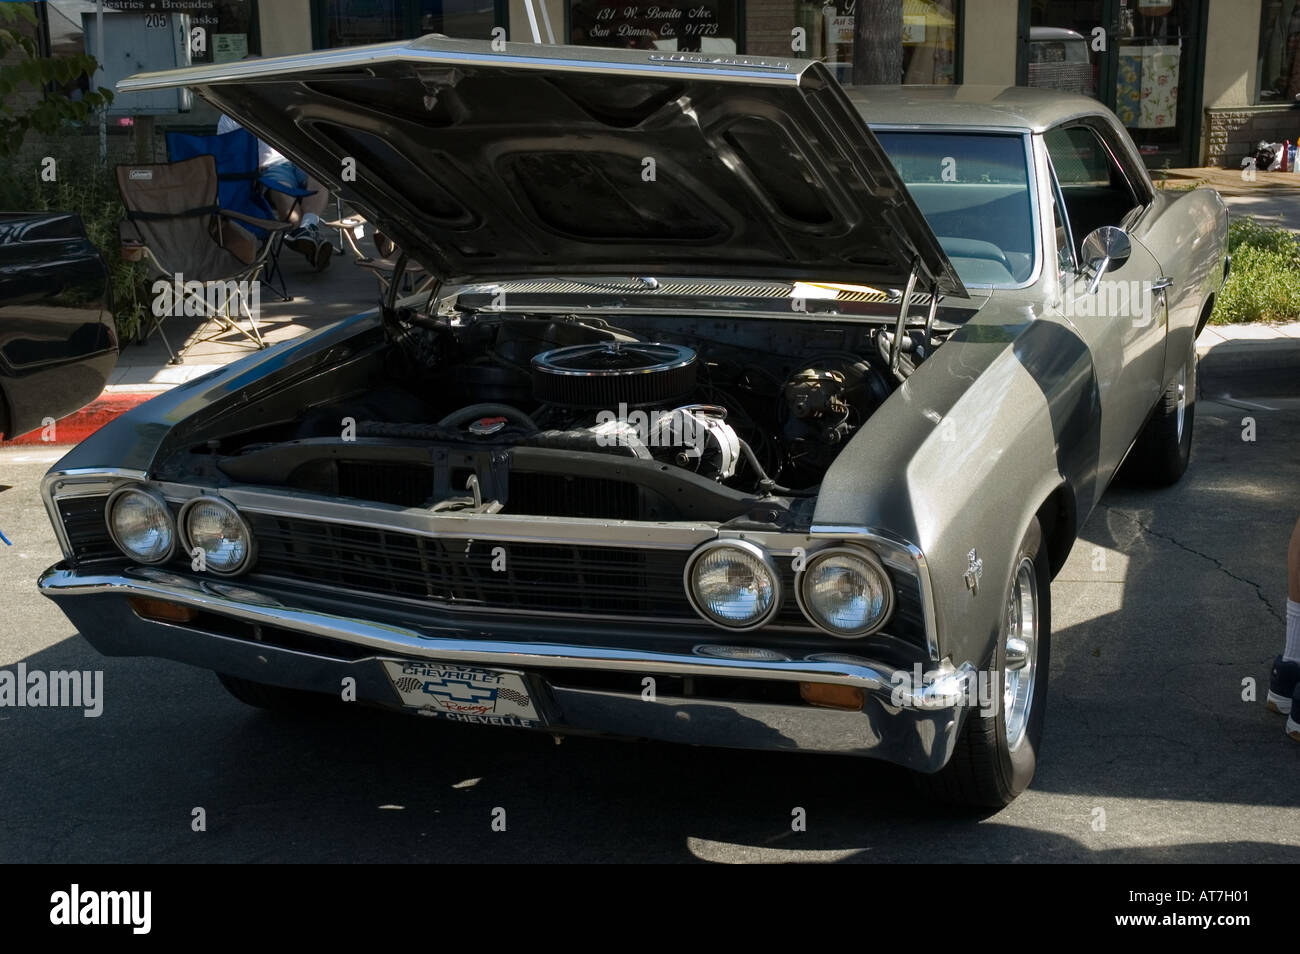 Los angeles california car show antique customized chevrolet chevy chevelle 1967 67 grey gray open hood engine coupe 2 two door